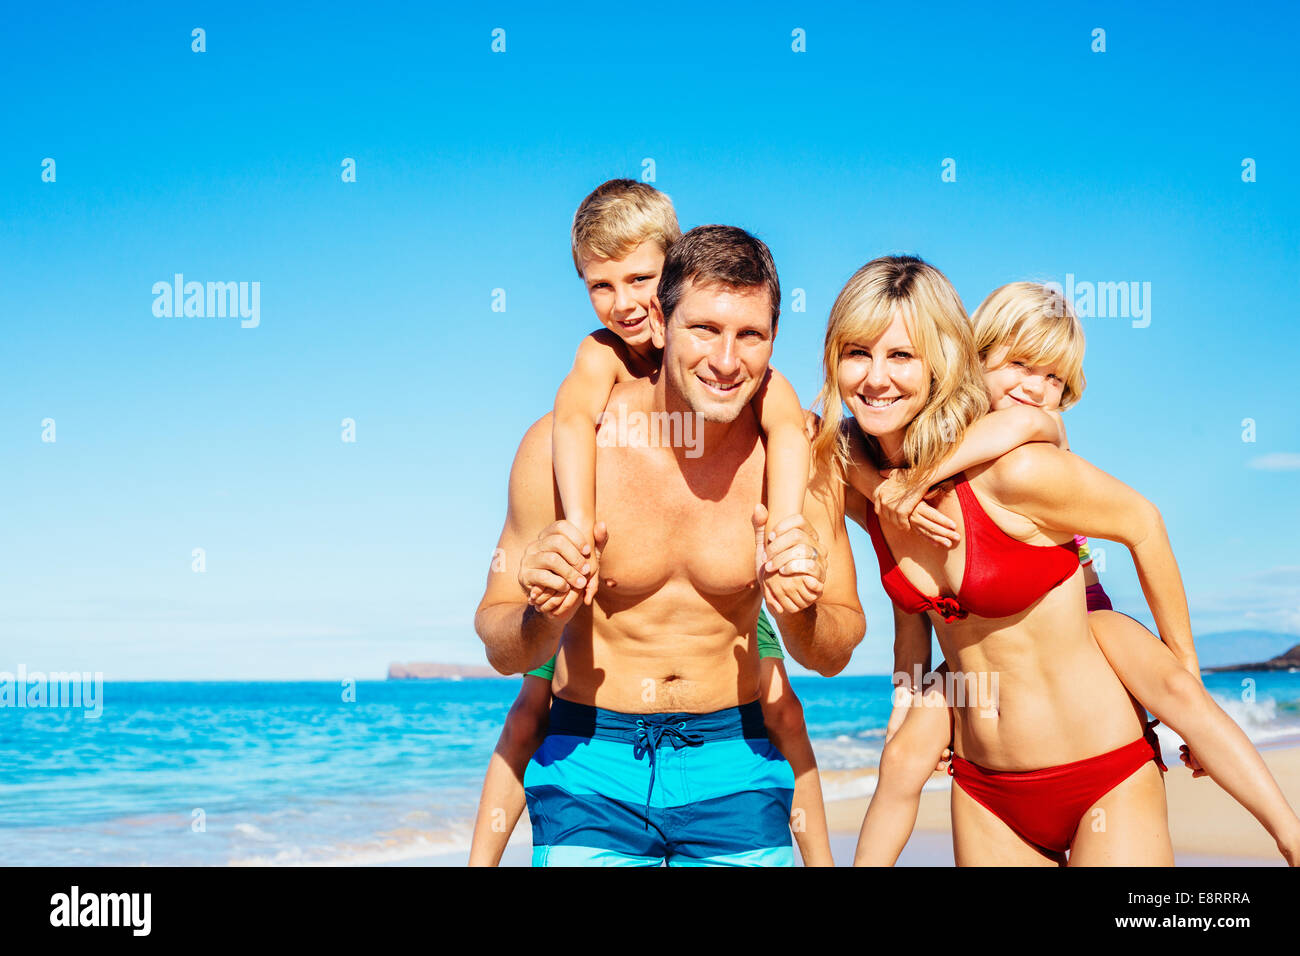 Family of Four Having Fun on Tropical Beach in Hawaii - Stock Image